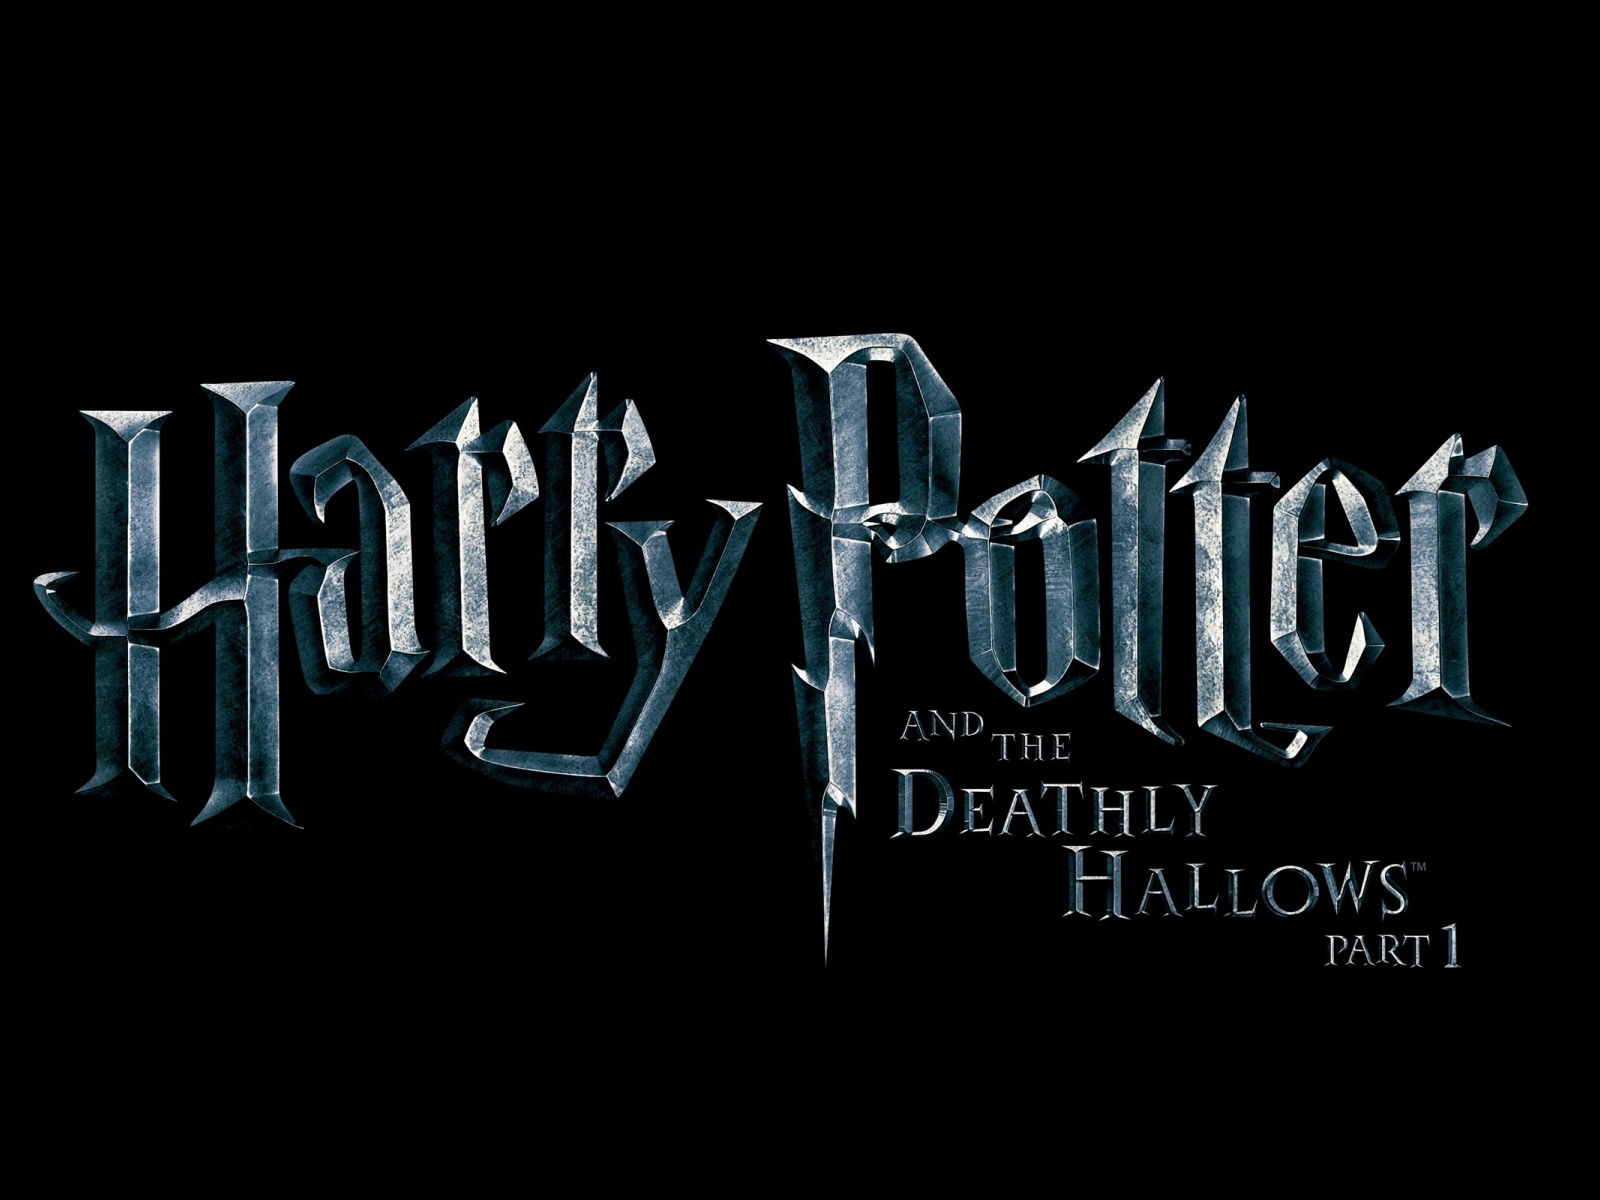 Download Wallpaper Harry Potter Twitter - harry-potter%3A-deathly-hallows_wallpapers_23311_1600x1200  Collection_20169.jpg